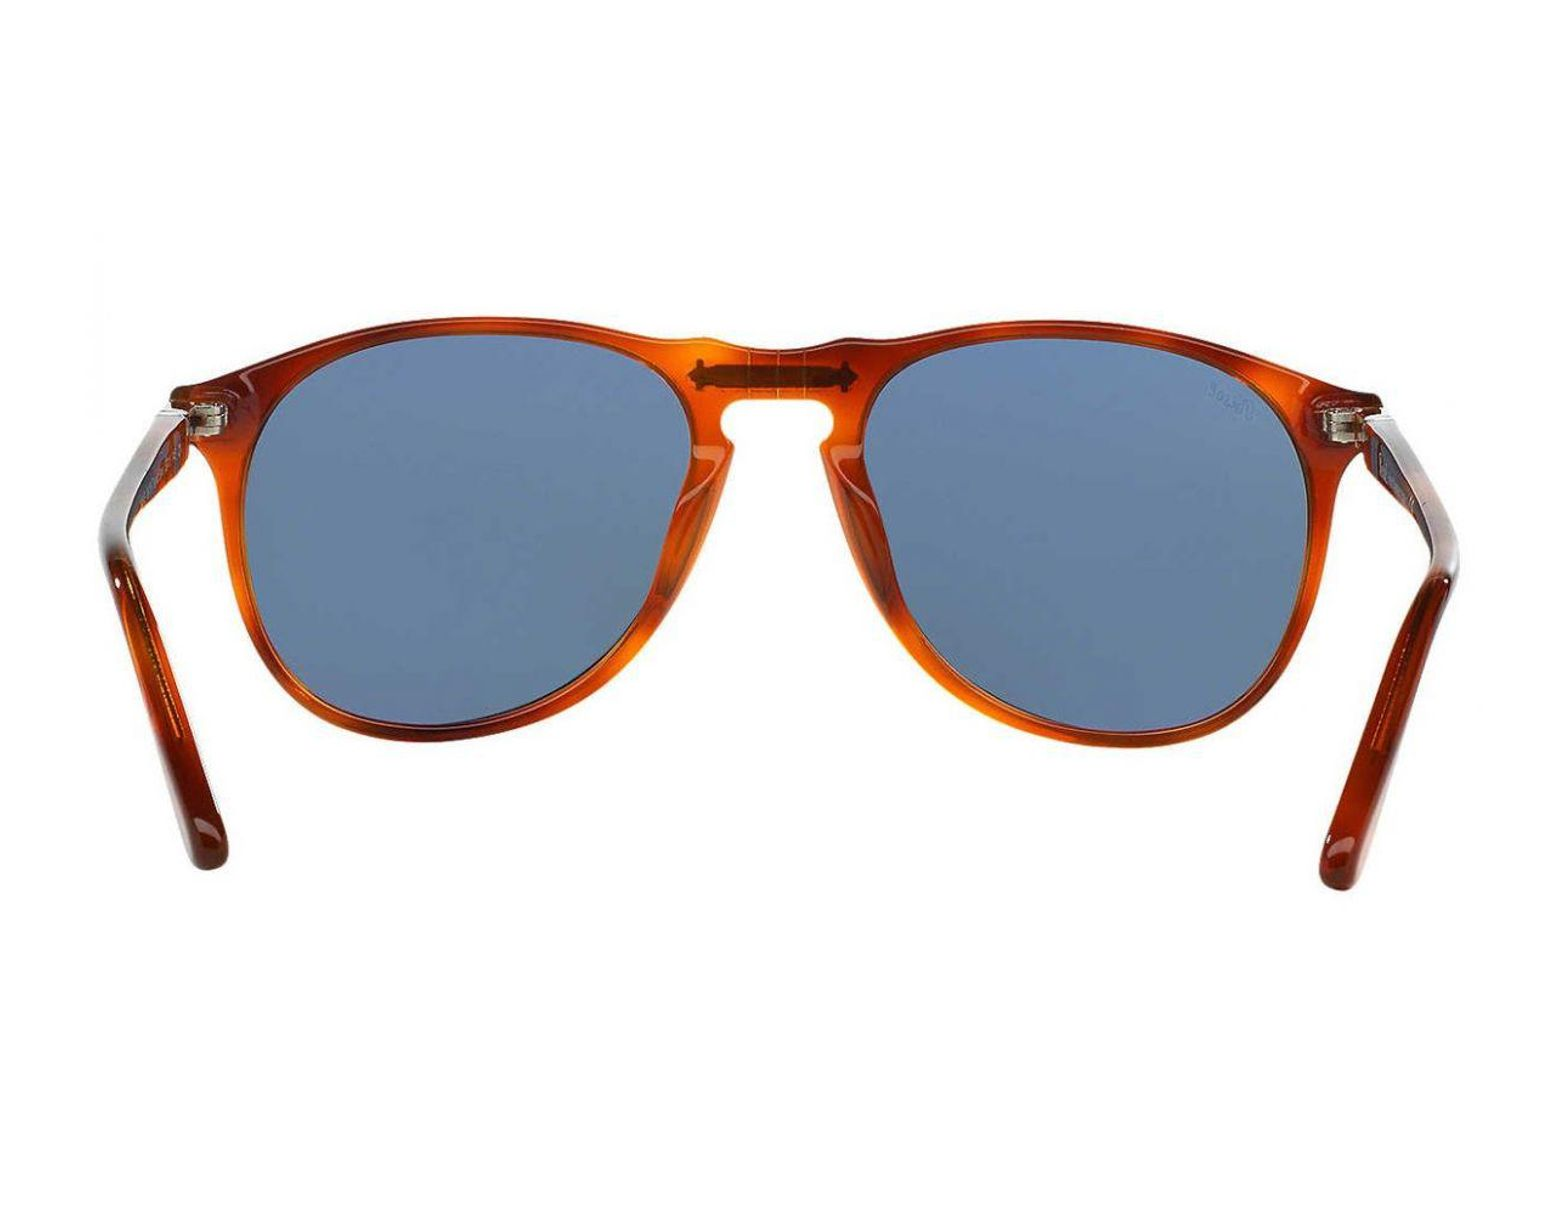 9bce705f03192 Persol Vintage Celebration Special Edition Terra Di Sienna Po9649s 96 56  Havana With Blue Lenses Sunglasses in Blue for Men - Lyst